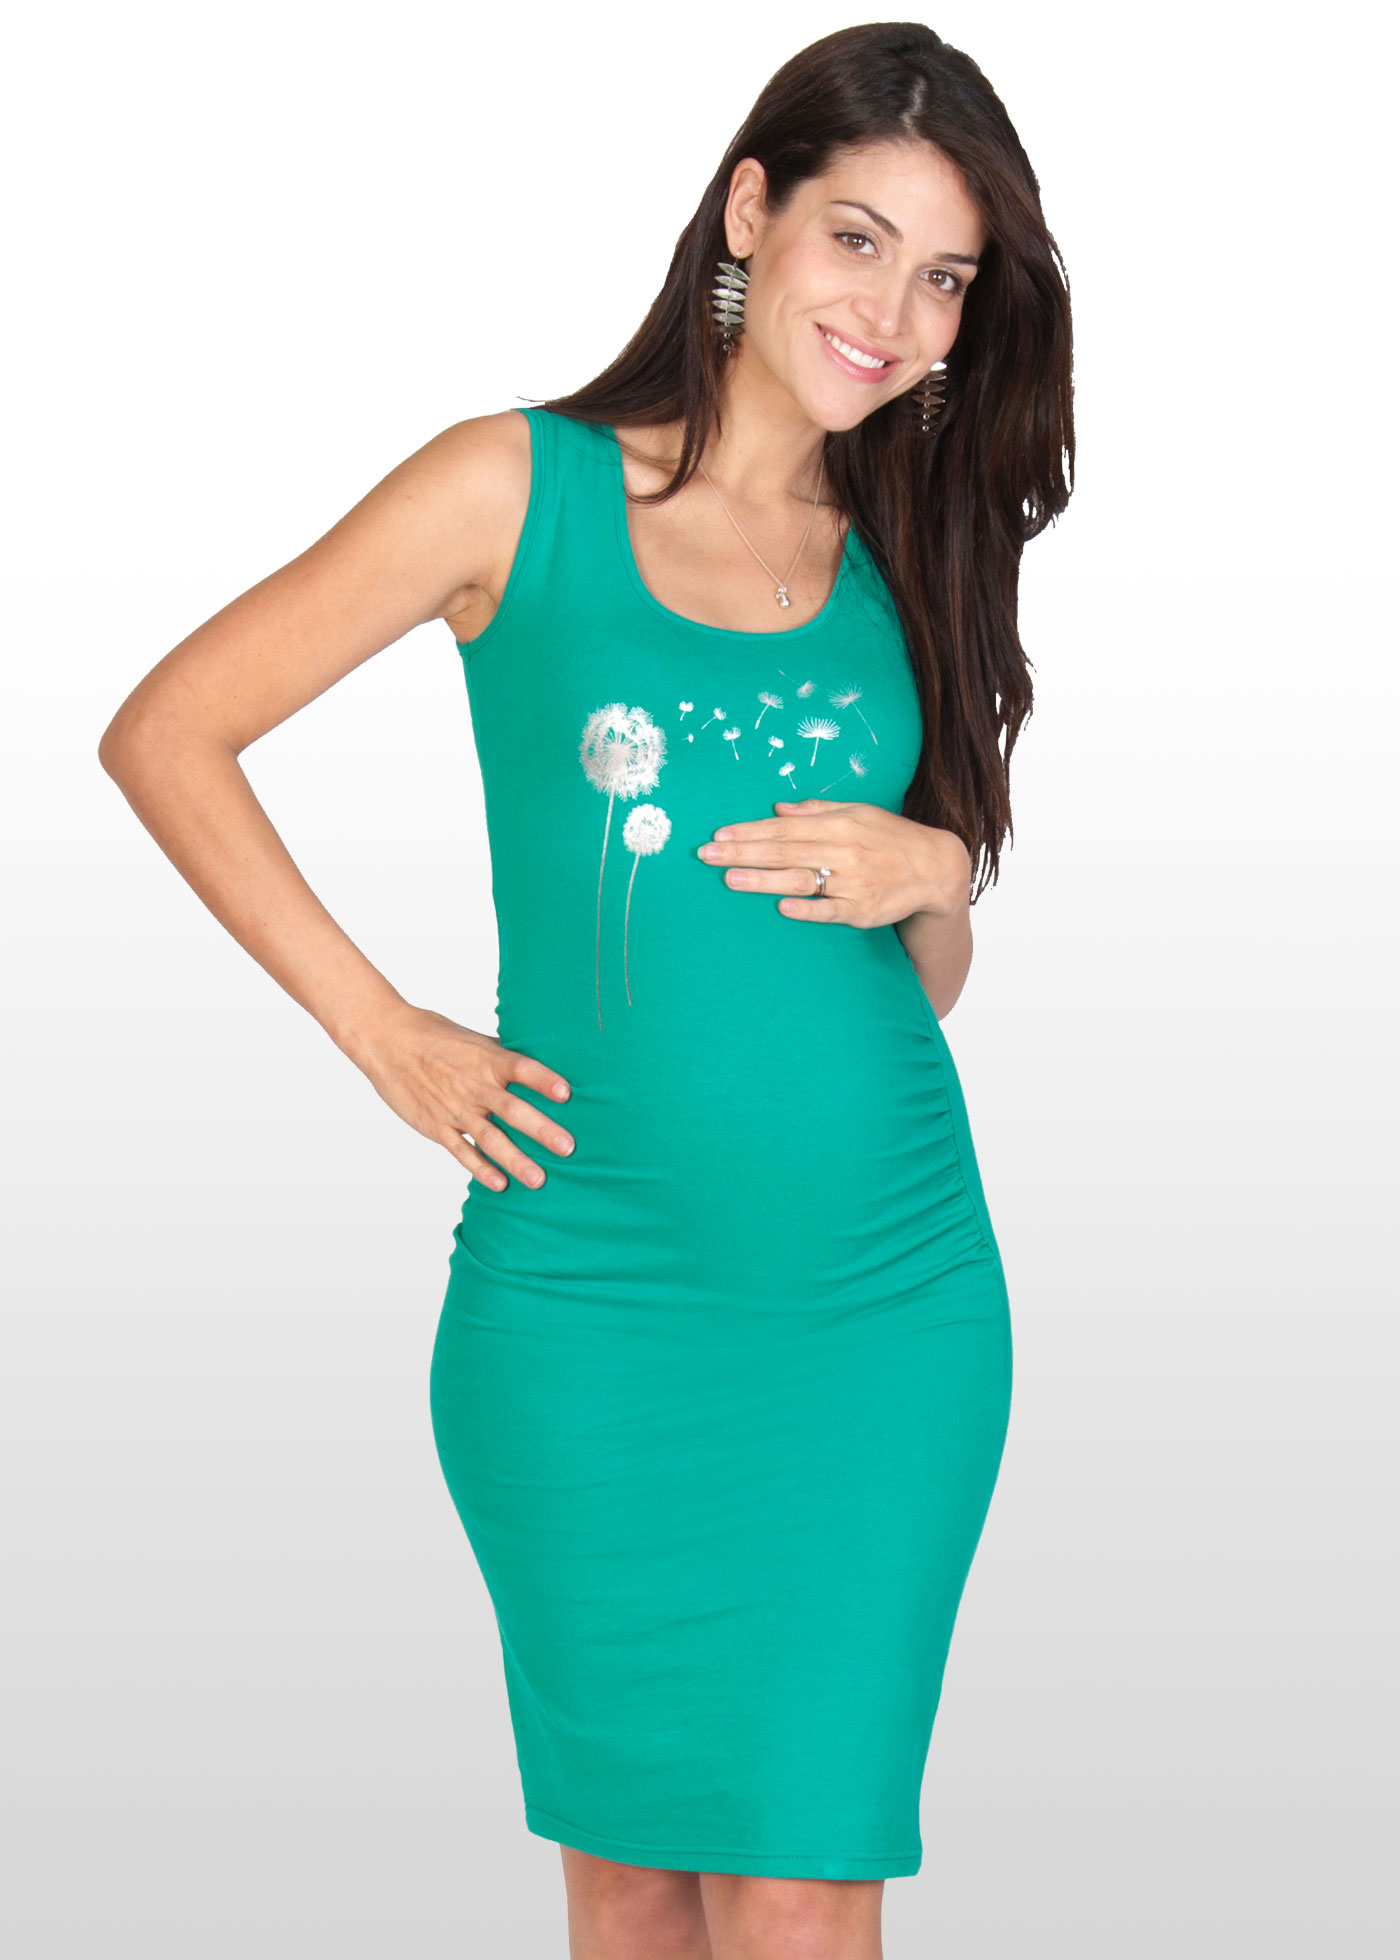 Emerald print maternity dress